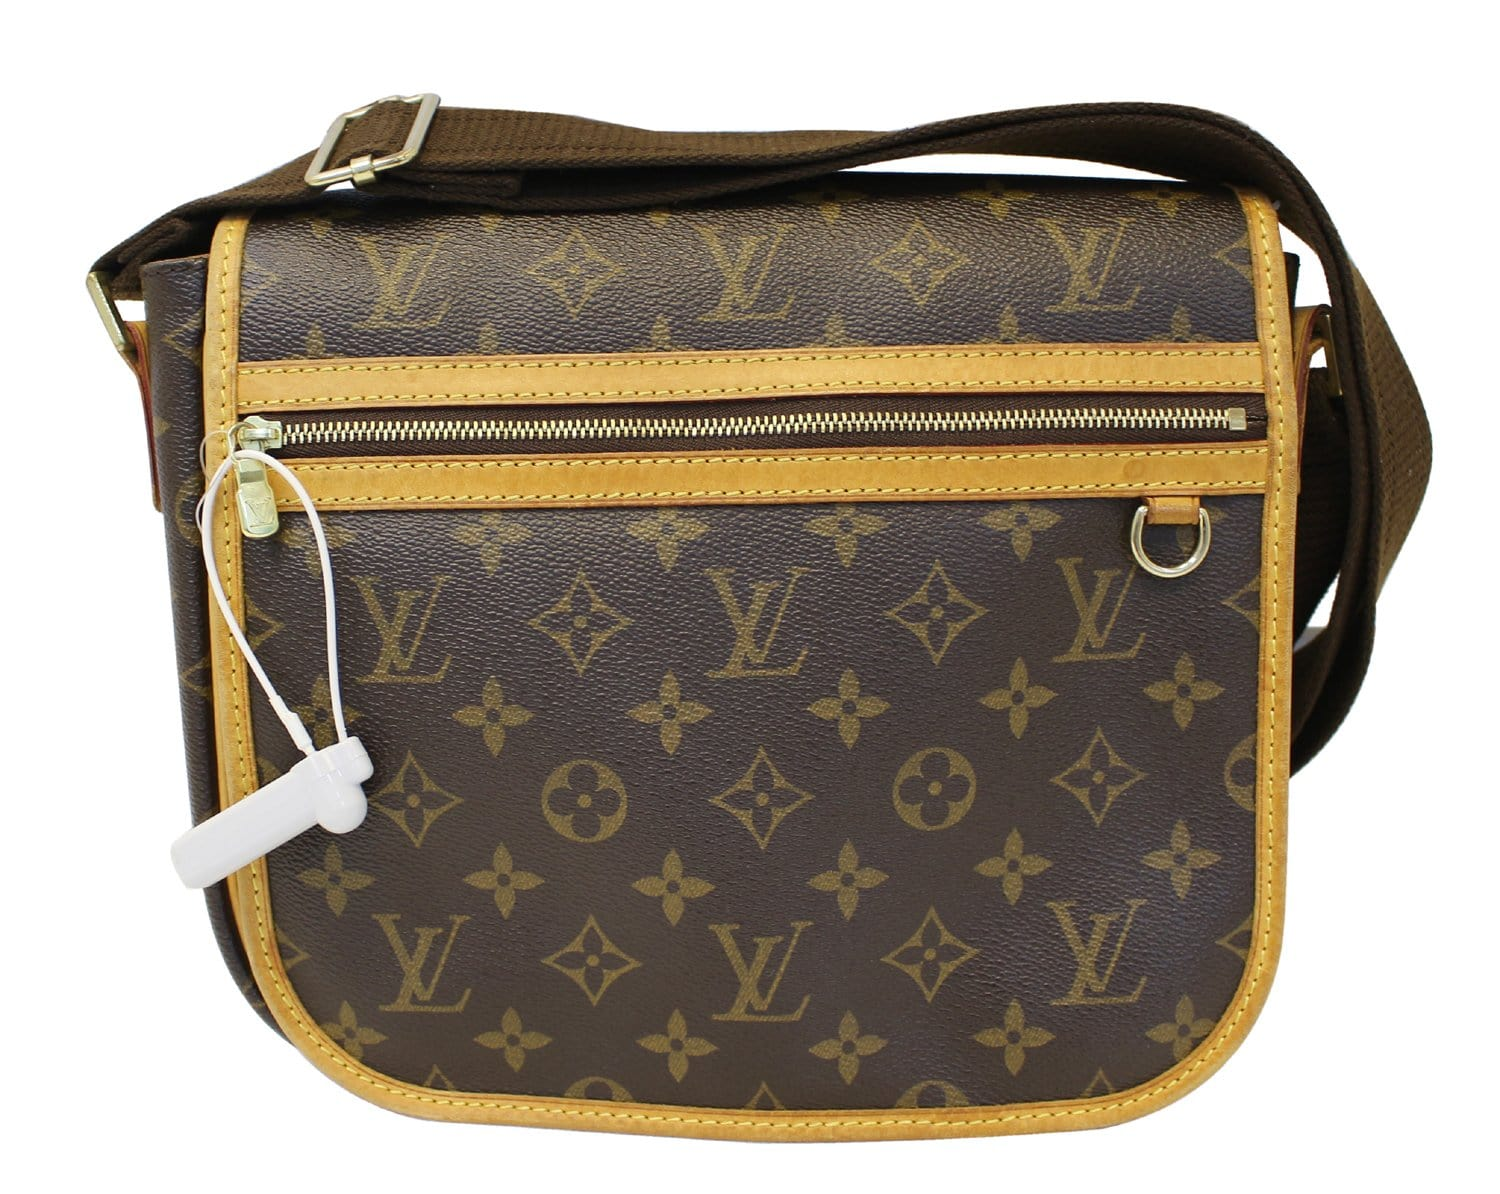 ccef5e6de7c Authentic LOUIS VUITTON Monogram Canvas Bosphore PM Bag TT1700